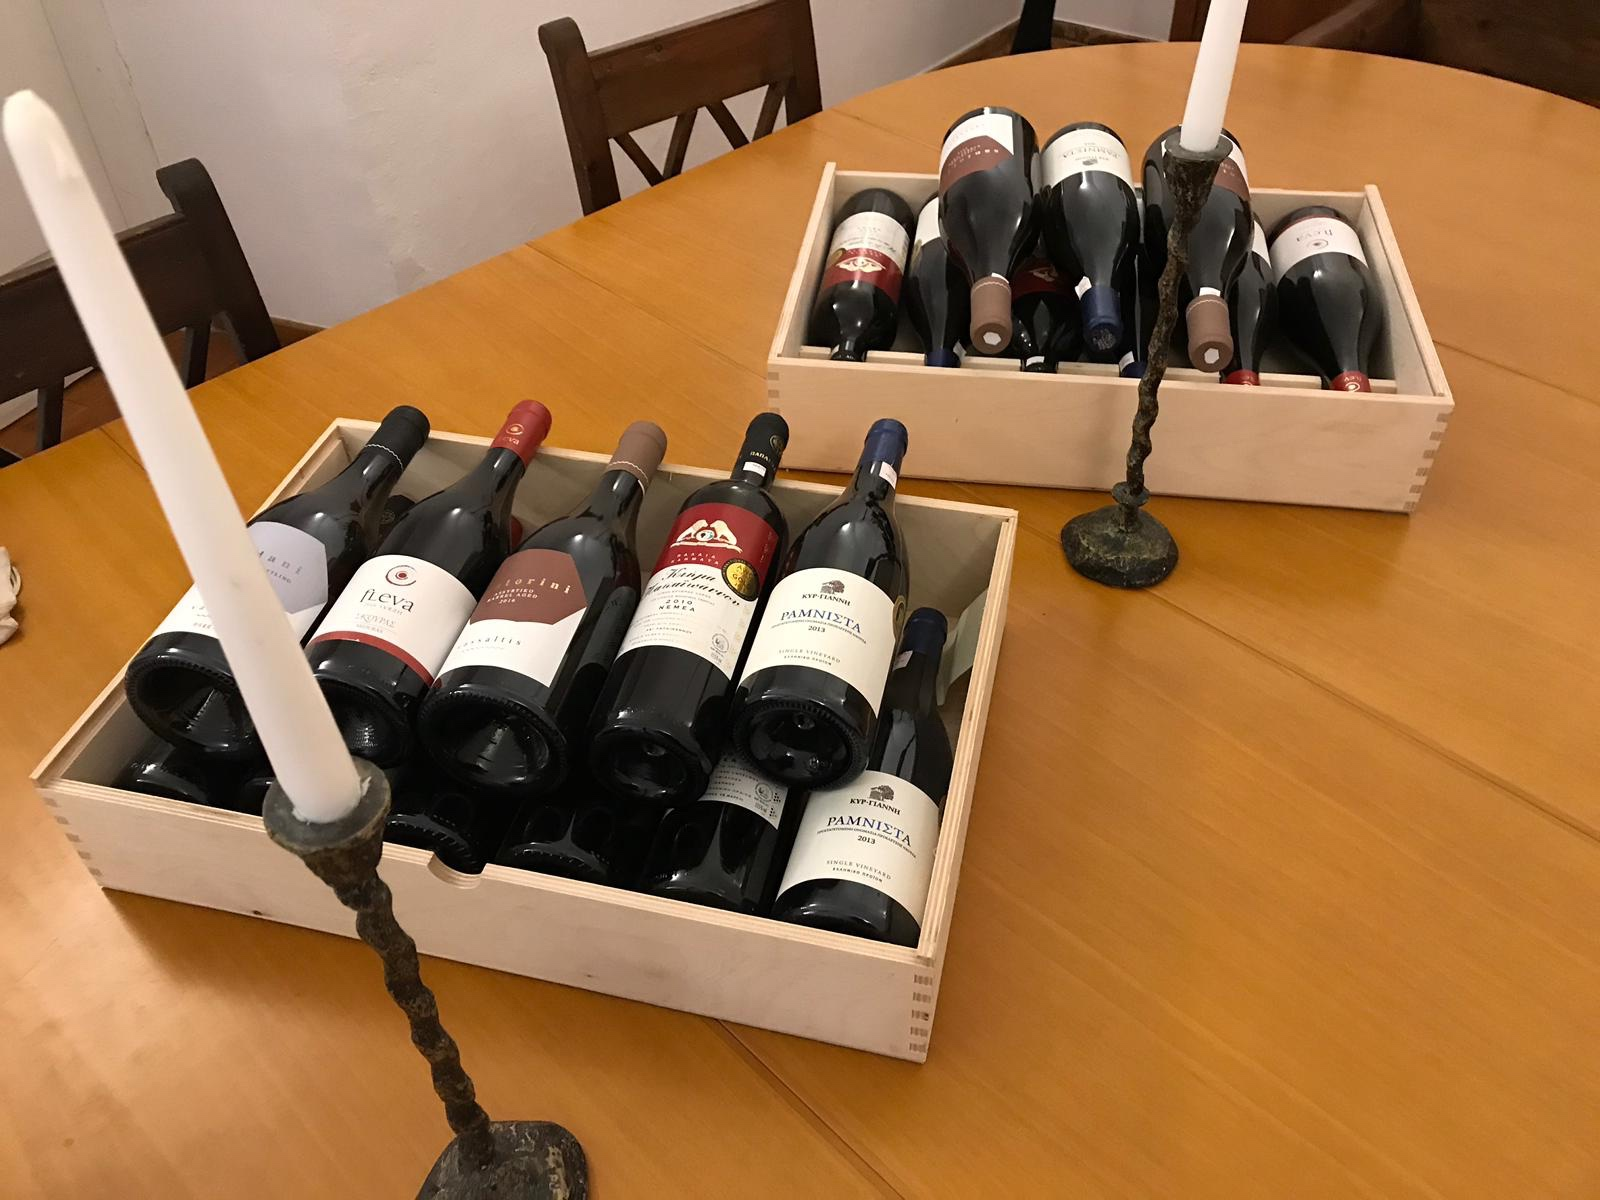 Greek wines have been transformed in recent years - quality is the order of the day